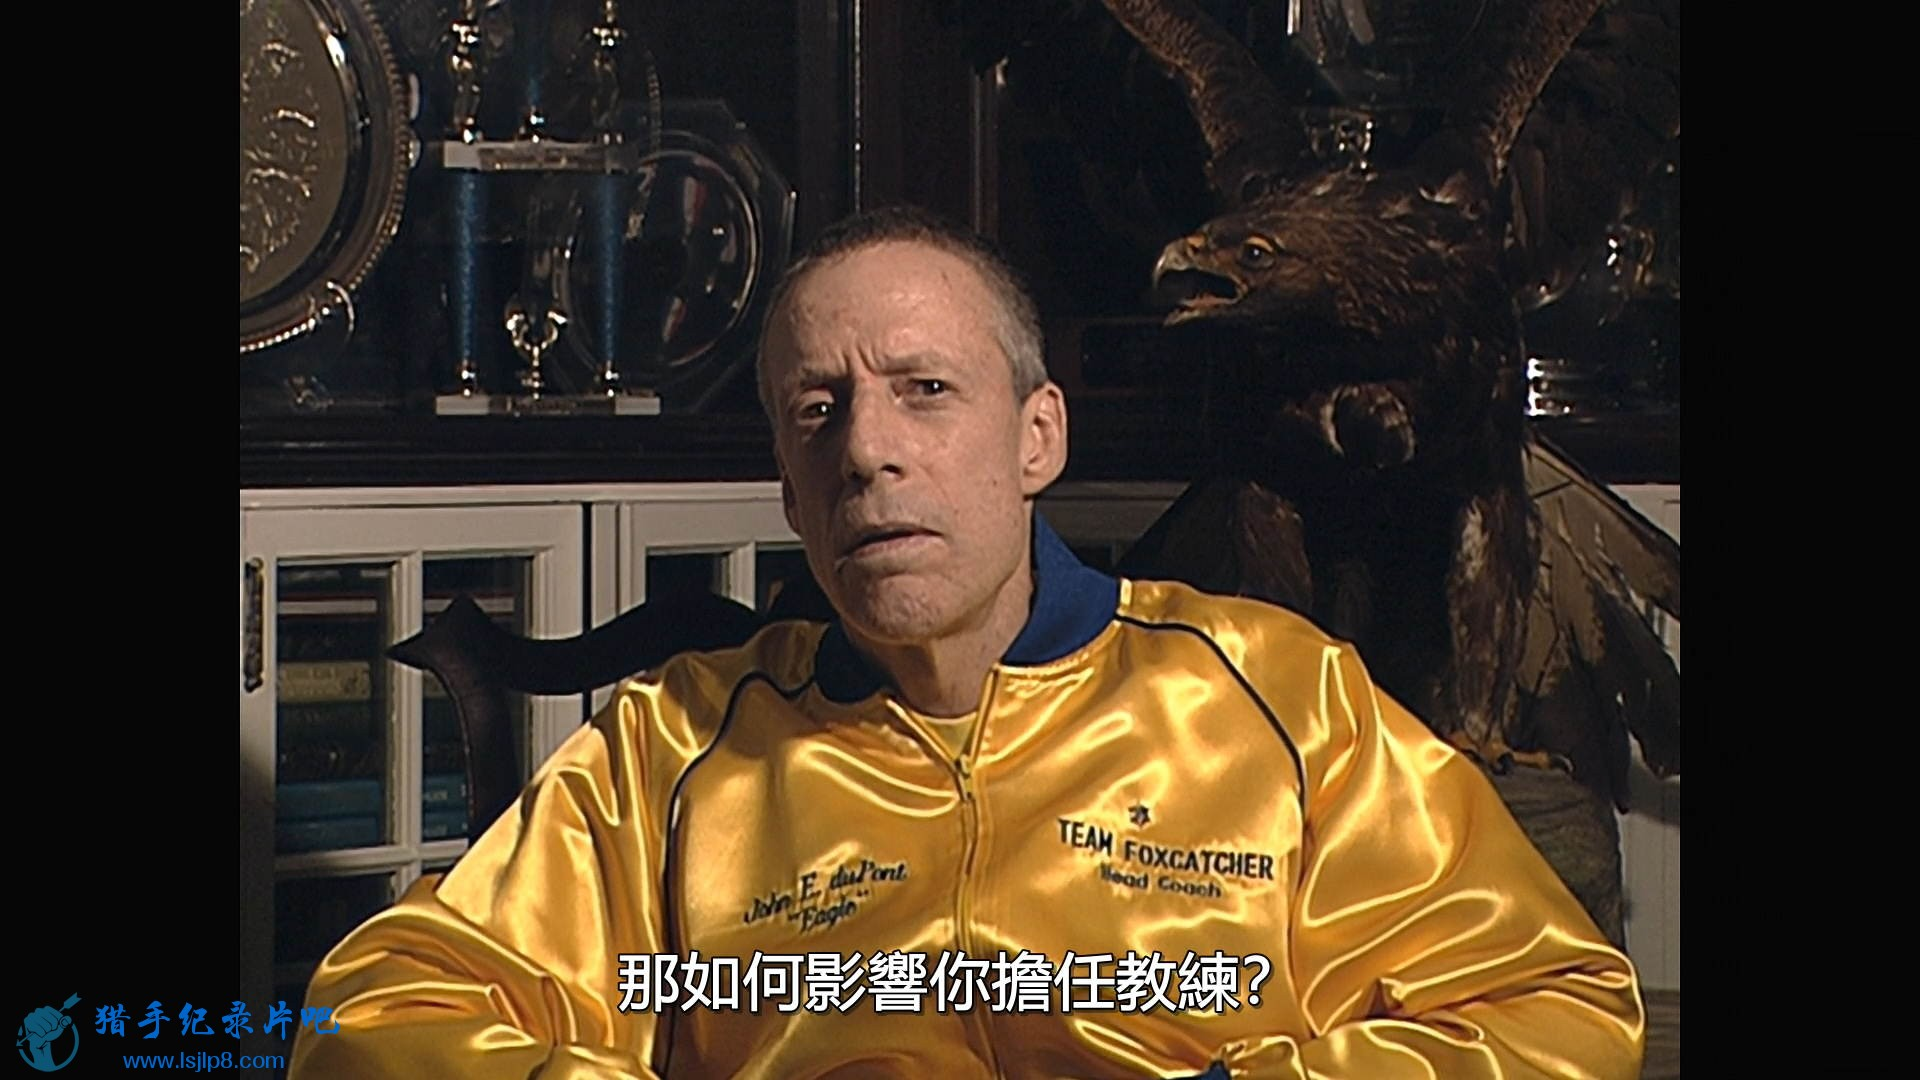 team.foxcatcher.2016.1080p.web.x264-strife.mkv_20200811_110038.275_看图王.jpg